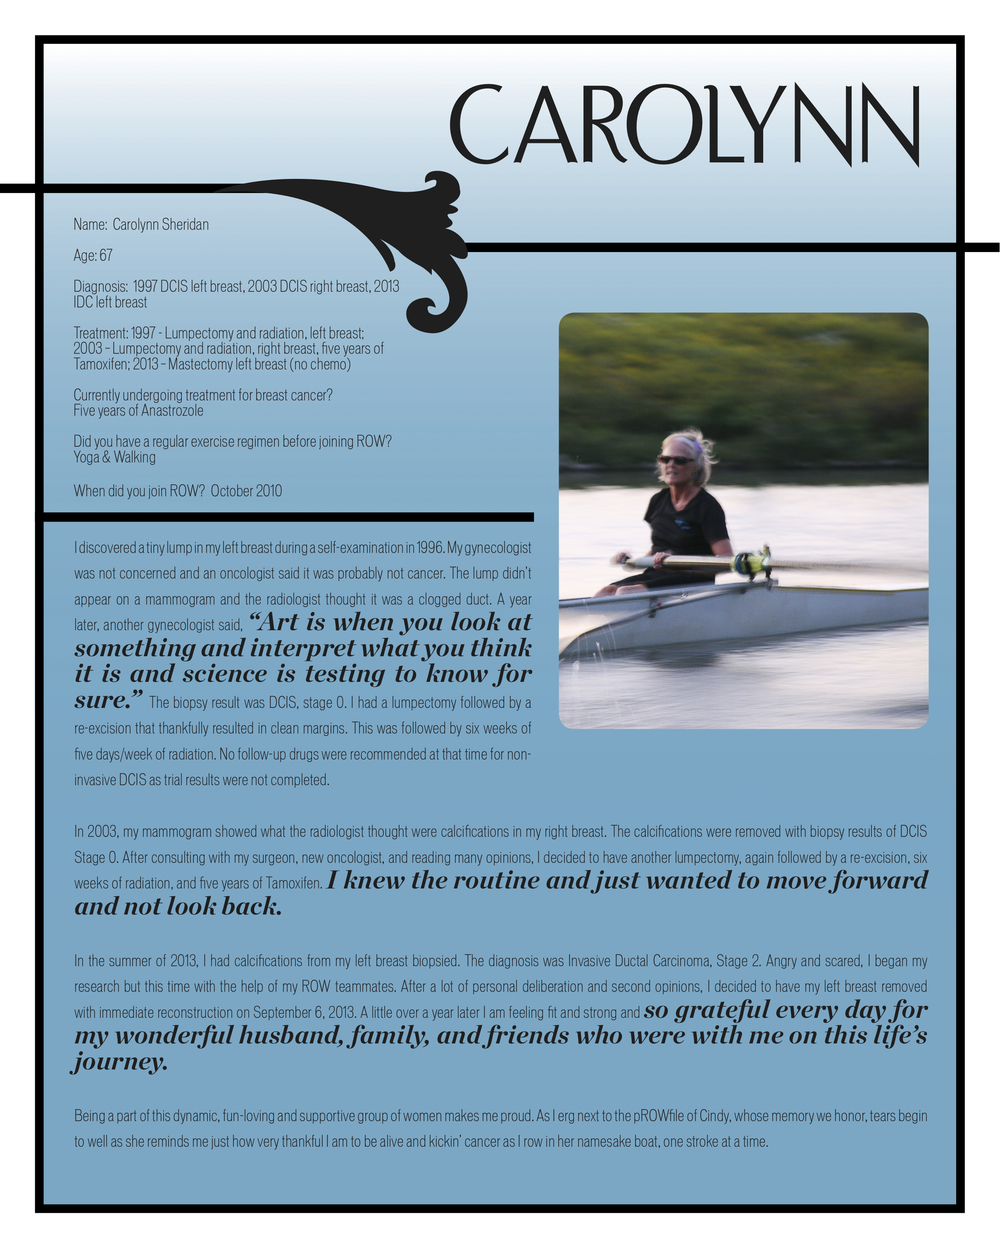 Carolynn_updated.jpg